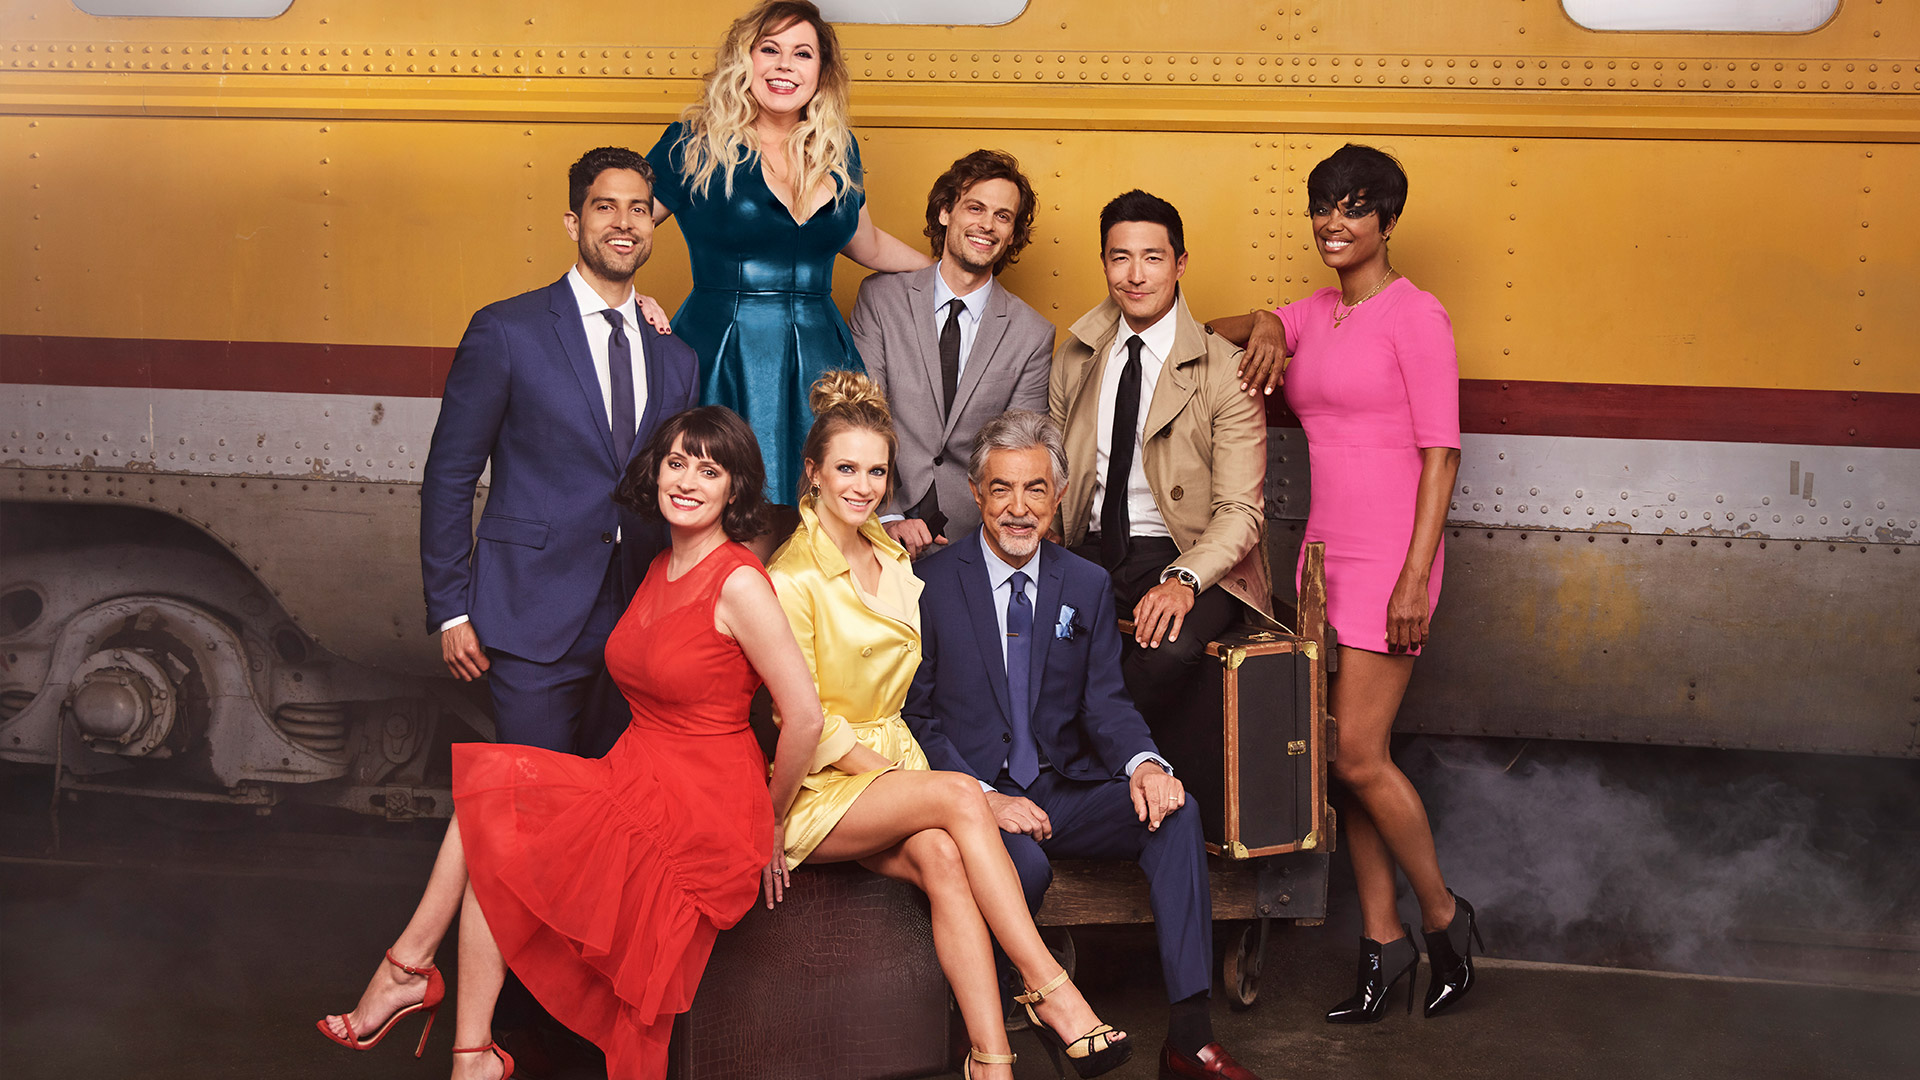 The cast of Criminal Minds, especially when they get together for a farewell photo shoot.